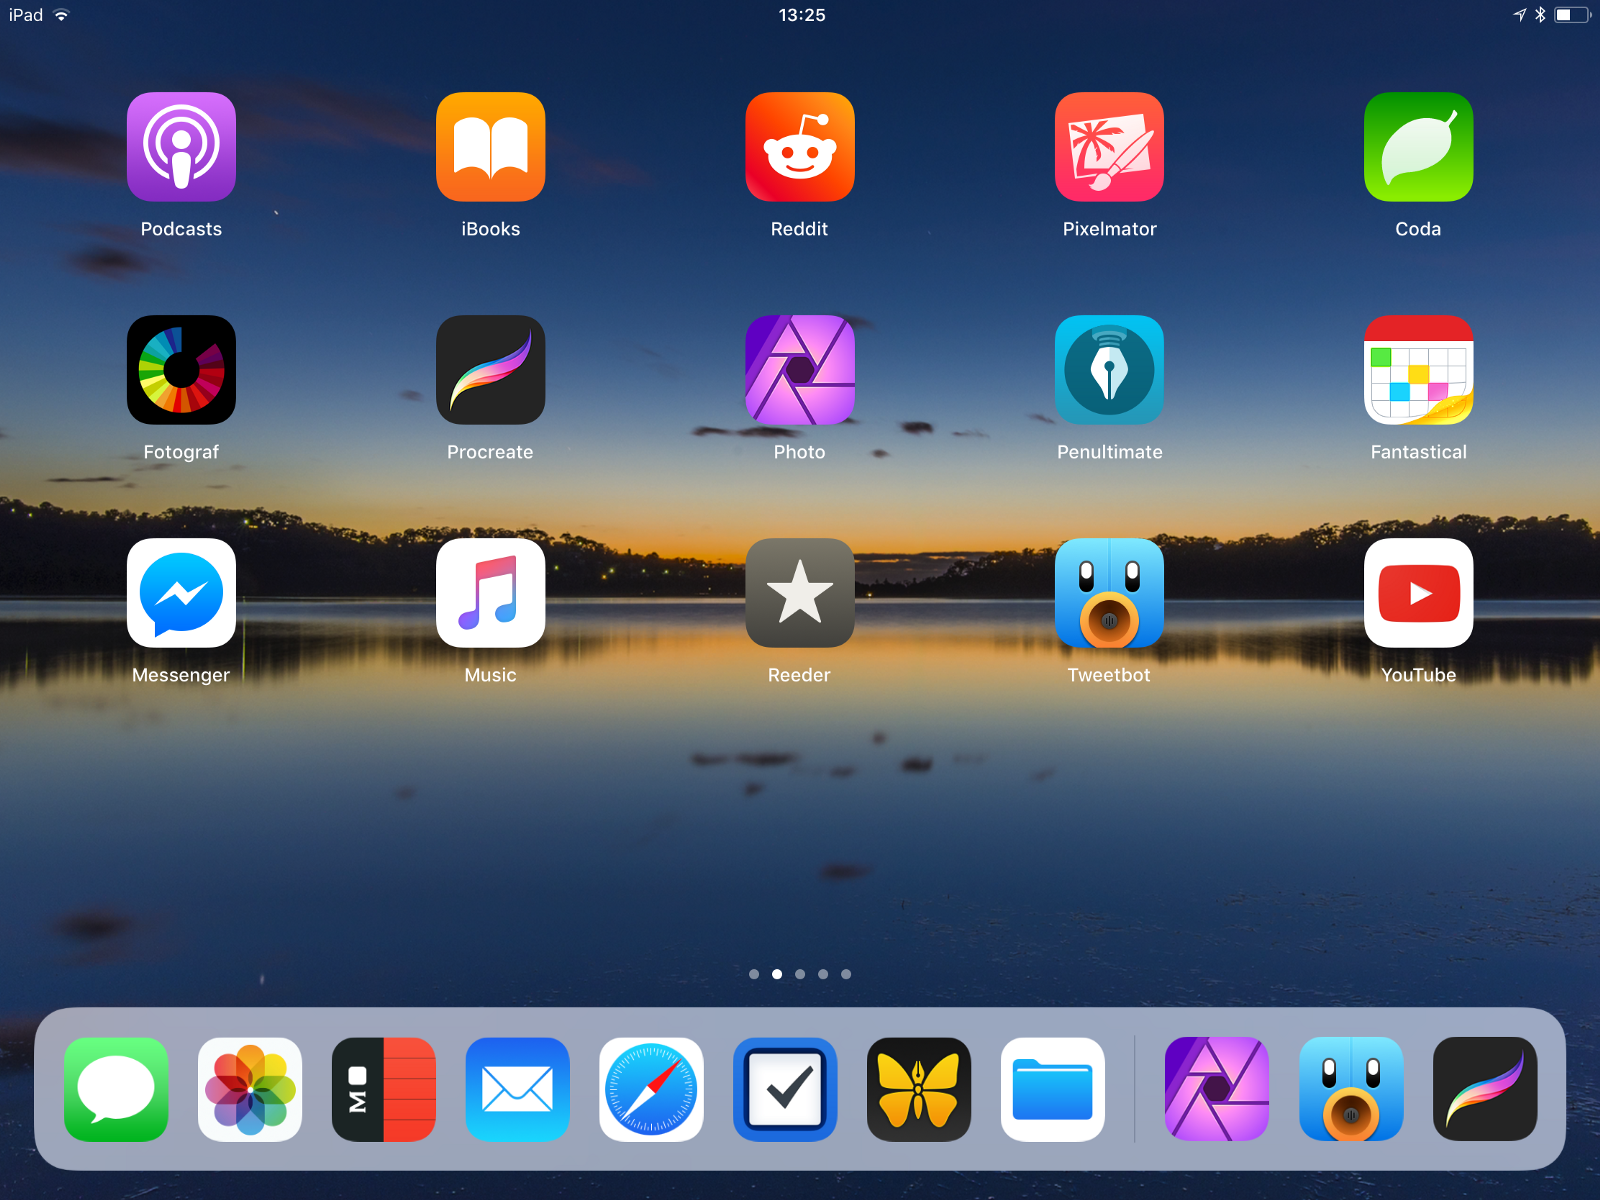 Png App For Ipad - iPad Pro 10.5 as my Main Computer – Part 3 – Joseph – Medium